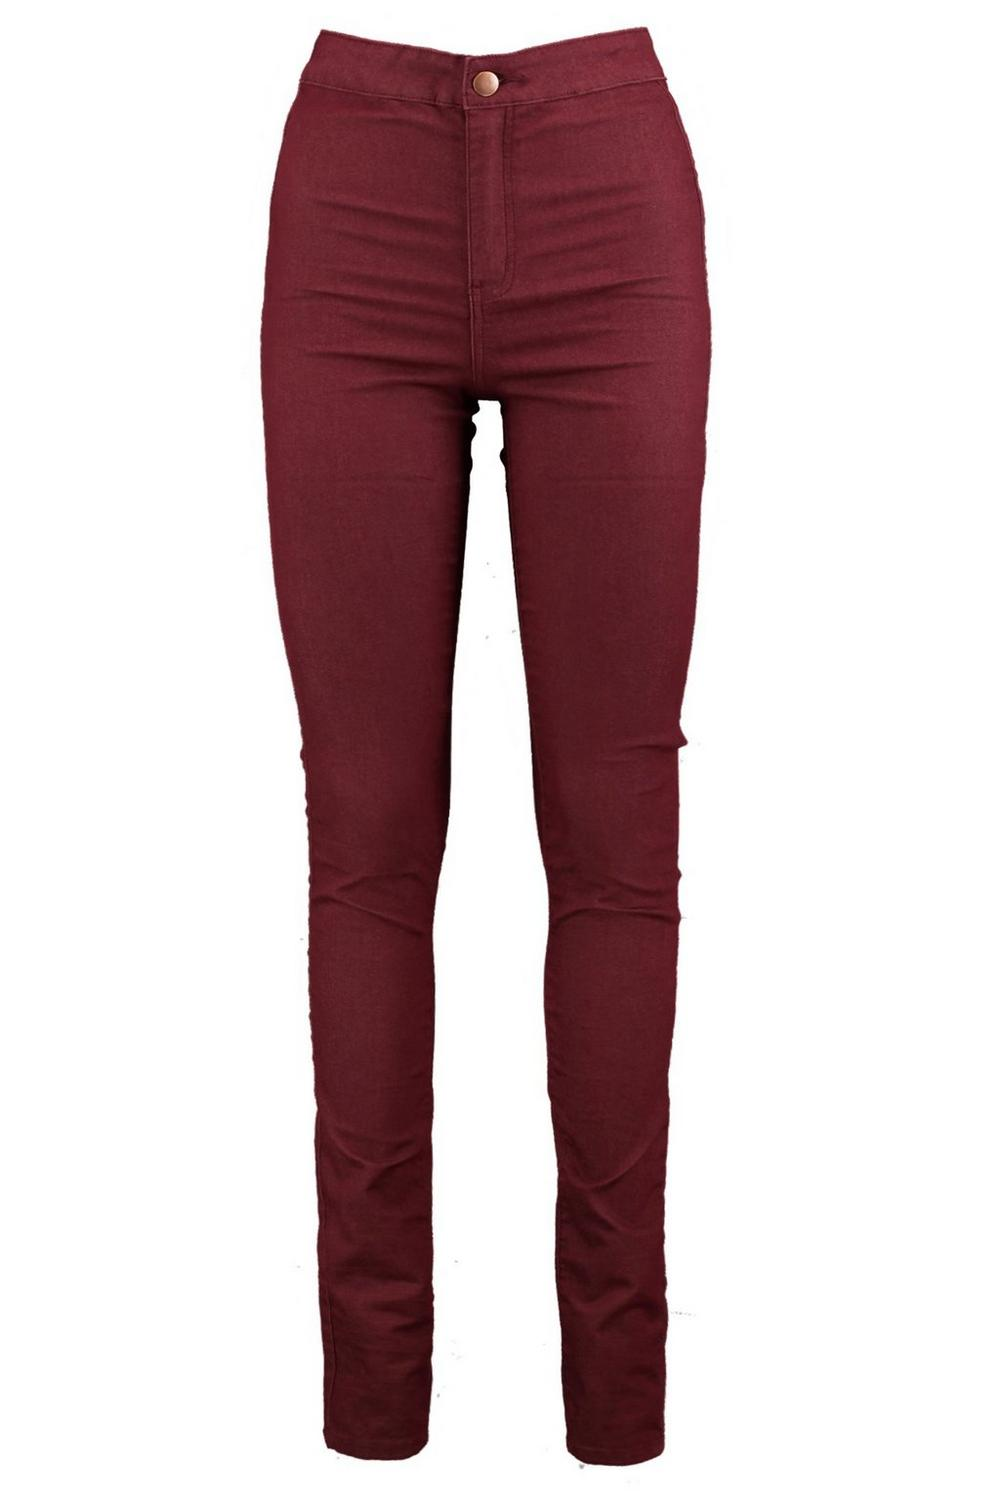 "Tall Lara 38"""" Leg High Waist Jeans"